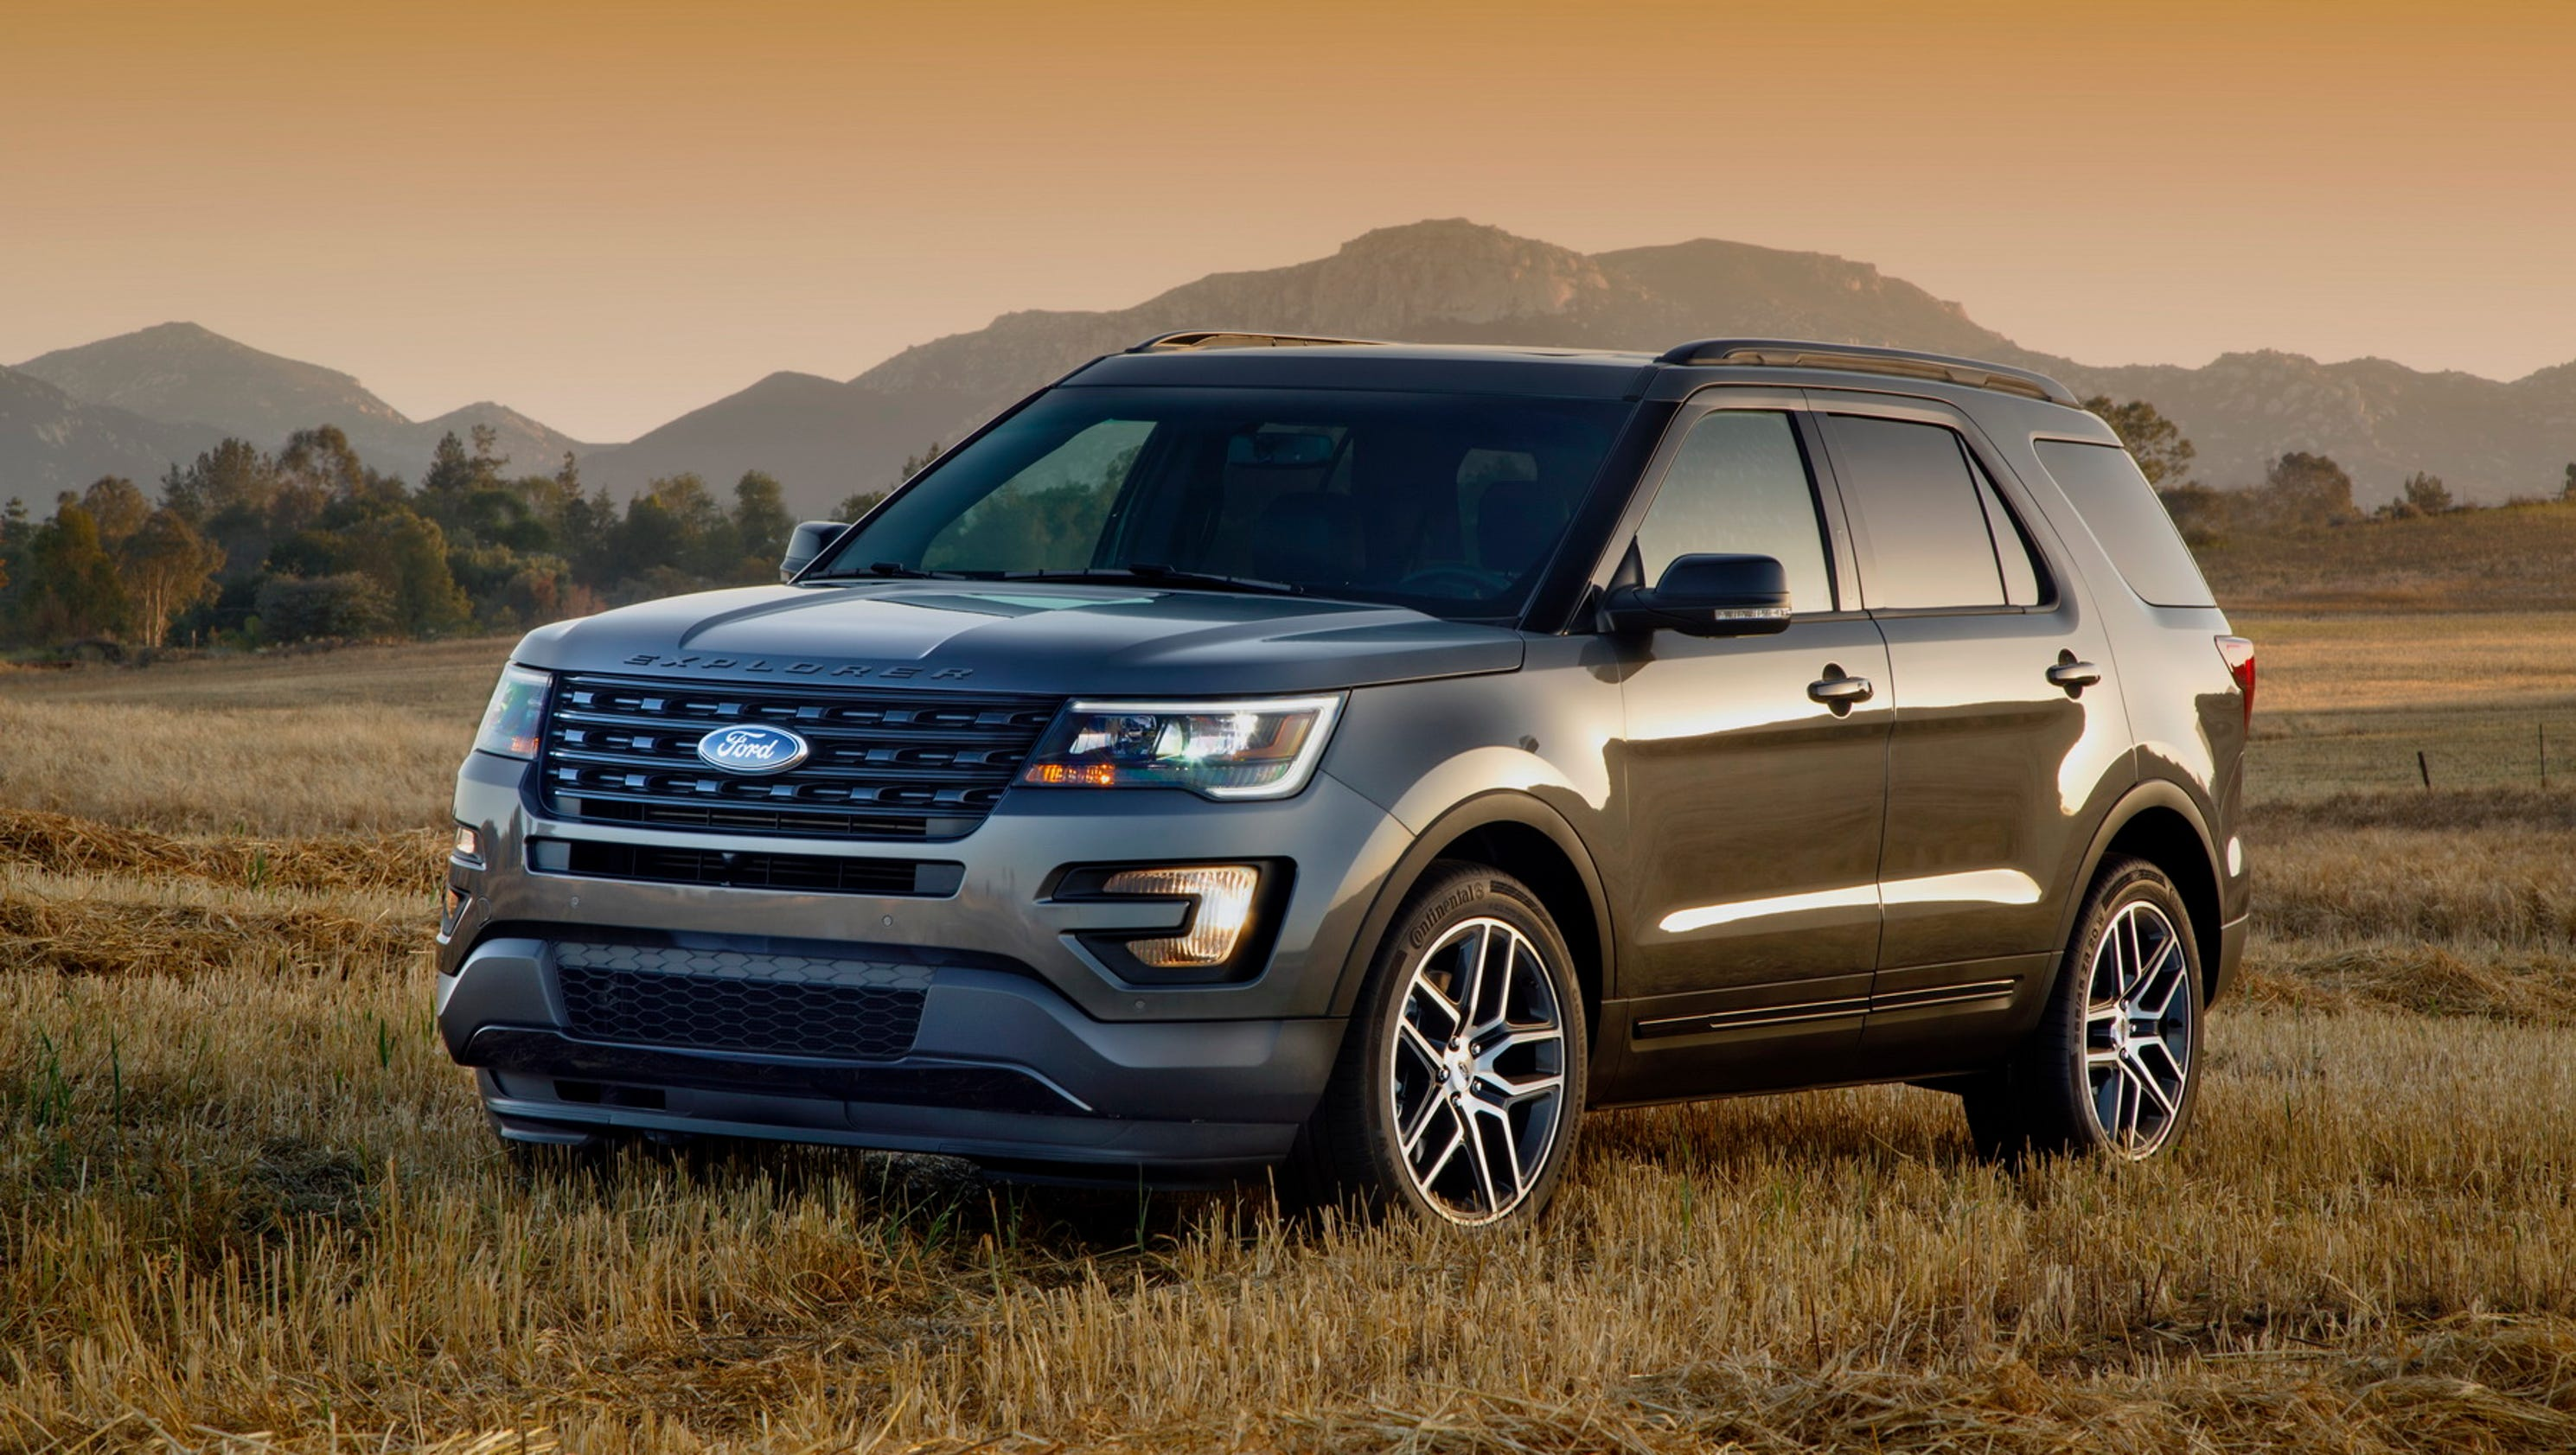 2016 Ford Explorer SUV is ready for any adventure